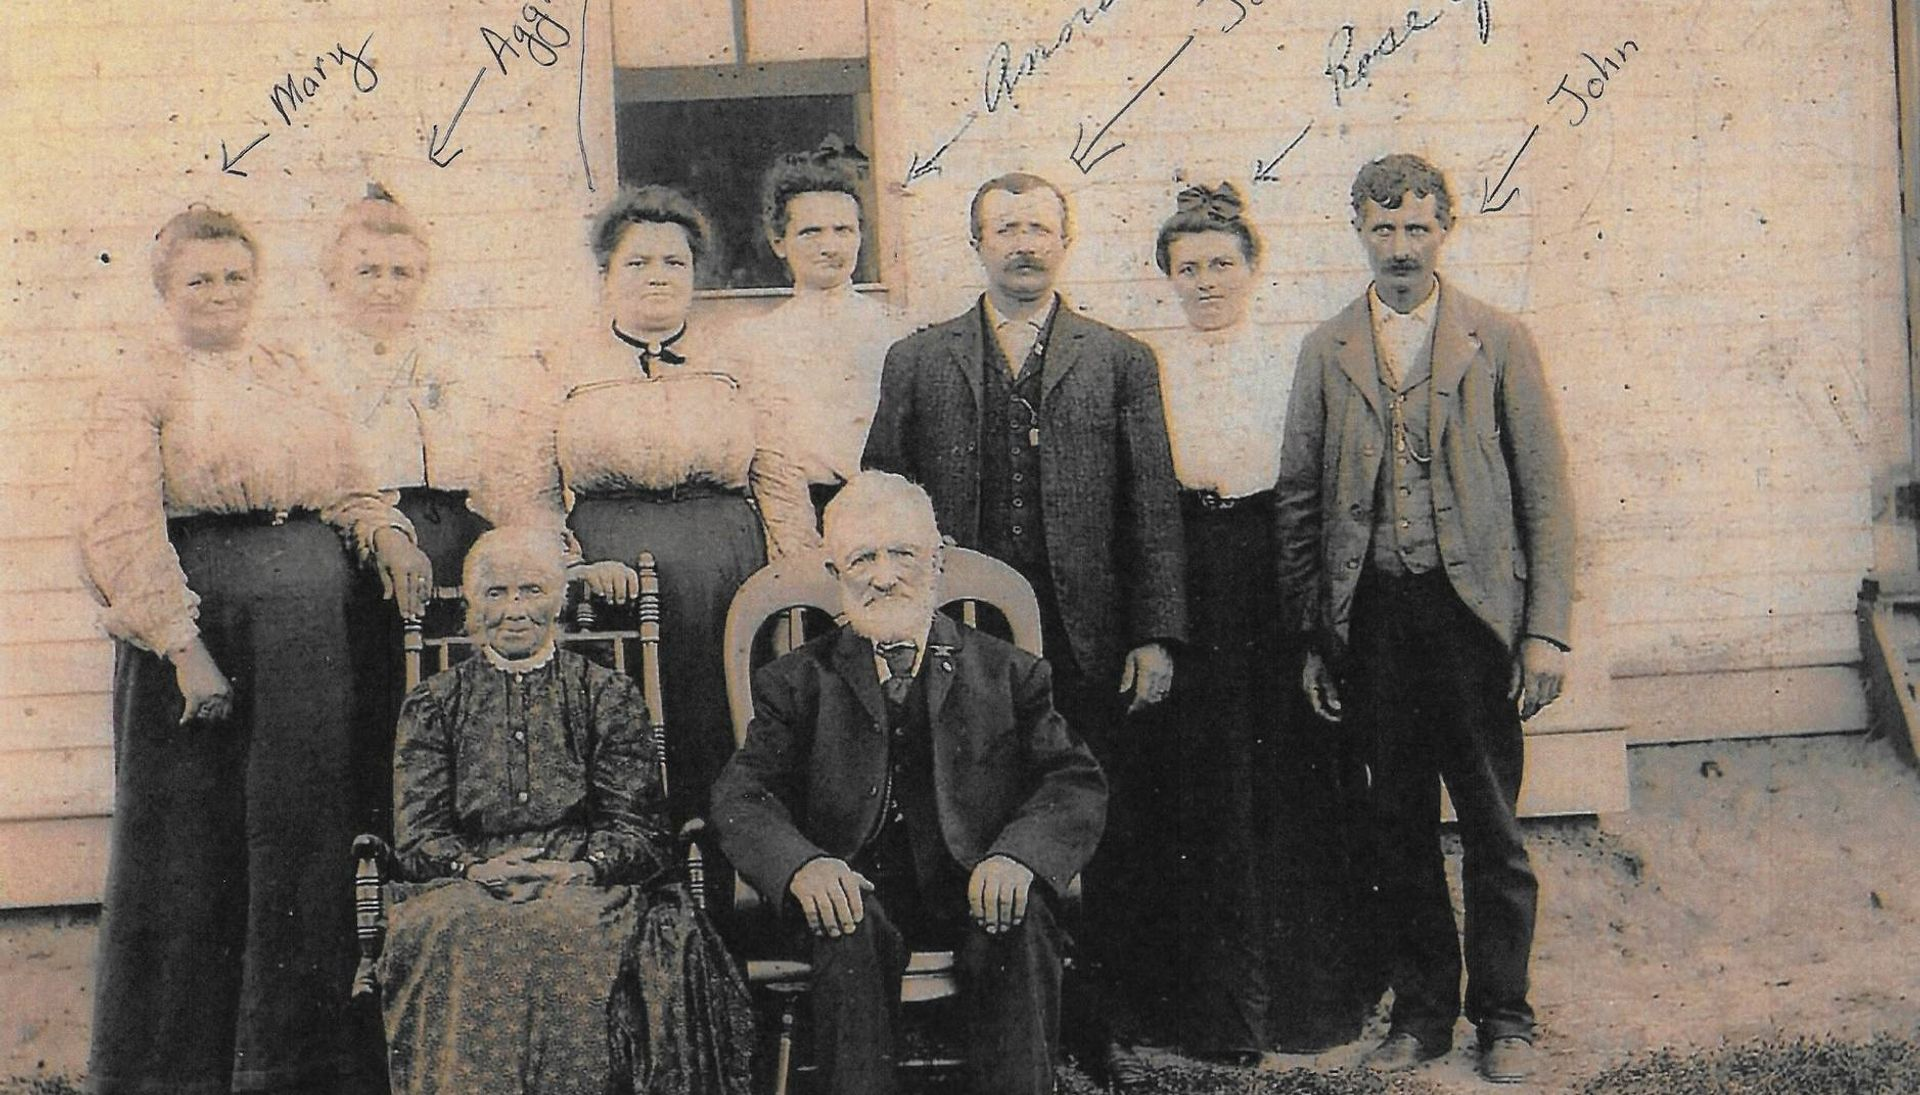 Family of nine posing in front of a building with a window